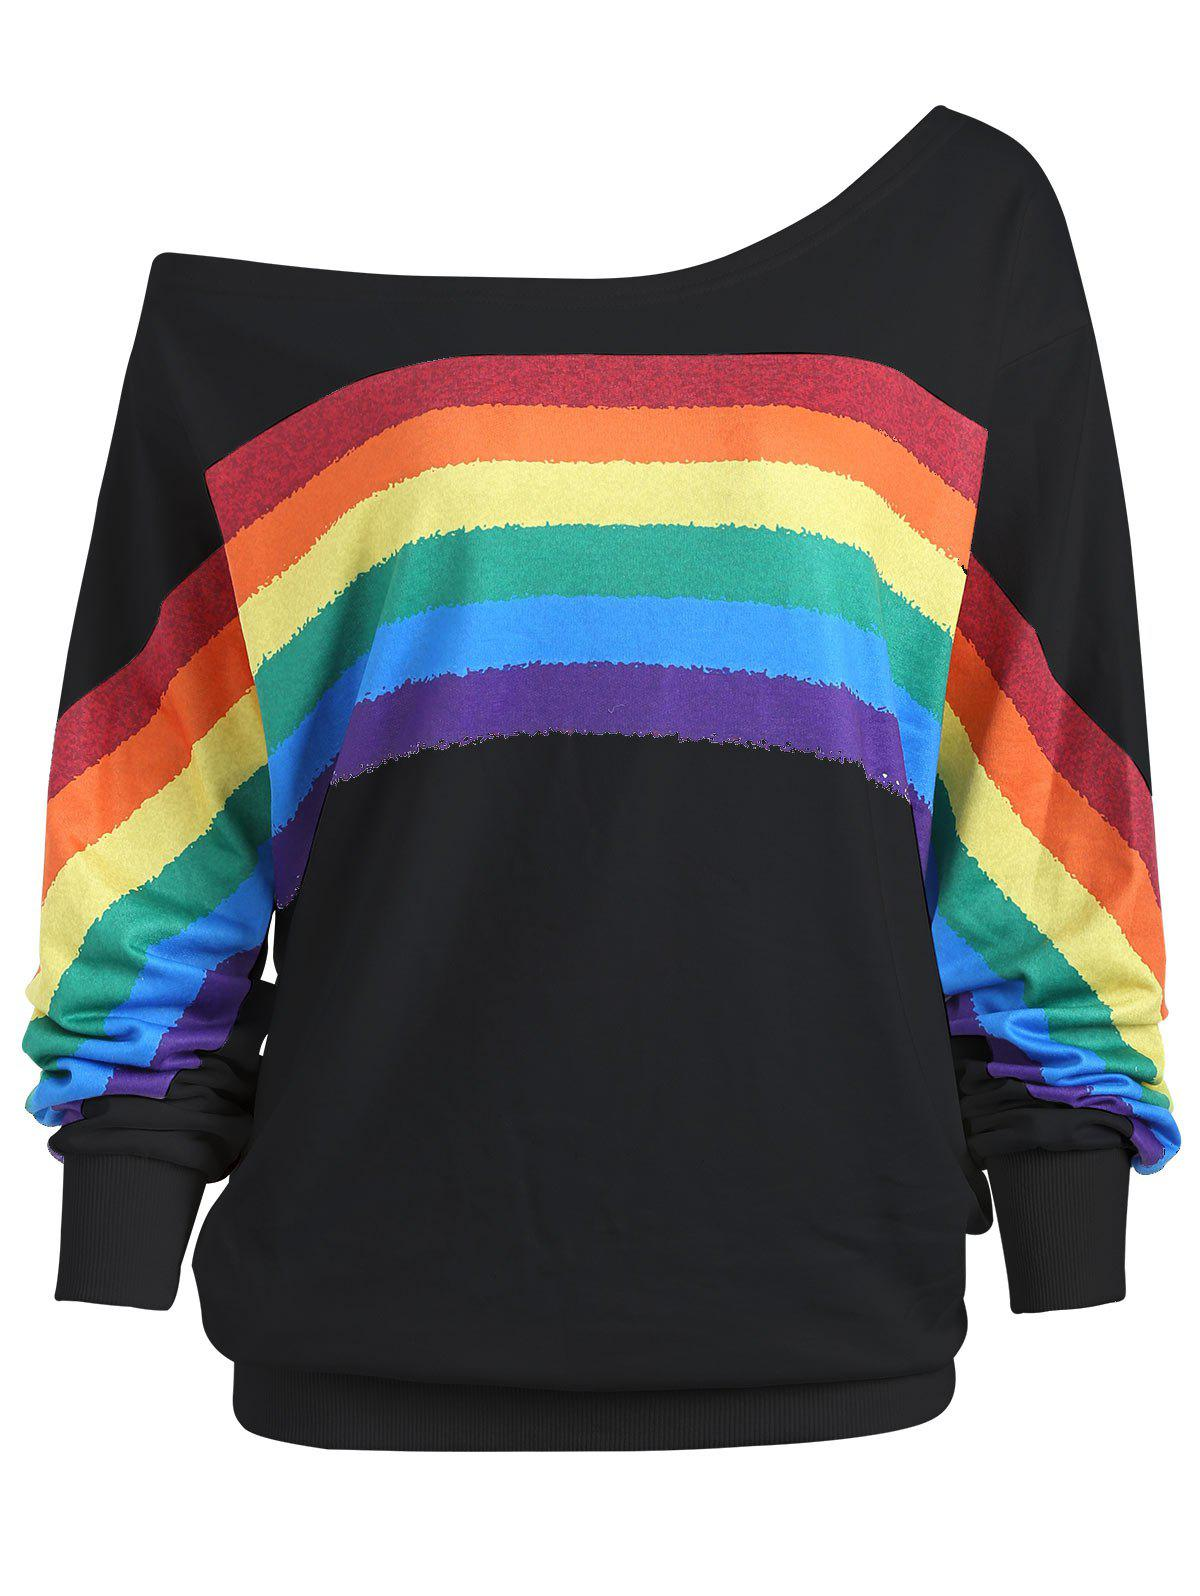 Print Rainbow Plus Size One Shoulder TopWOMEN<br><br>Size: 4XL; Color: BLACK; Material: Polyester; Shirt Length: Regular; Sleeve Length: Full; Style: Fashion; Pattern Style: Print; Season: Fall,Spring; Weight: 0.4200kg; Package Contents: 1 x Top;